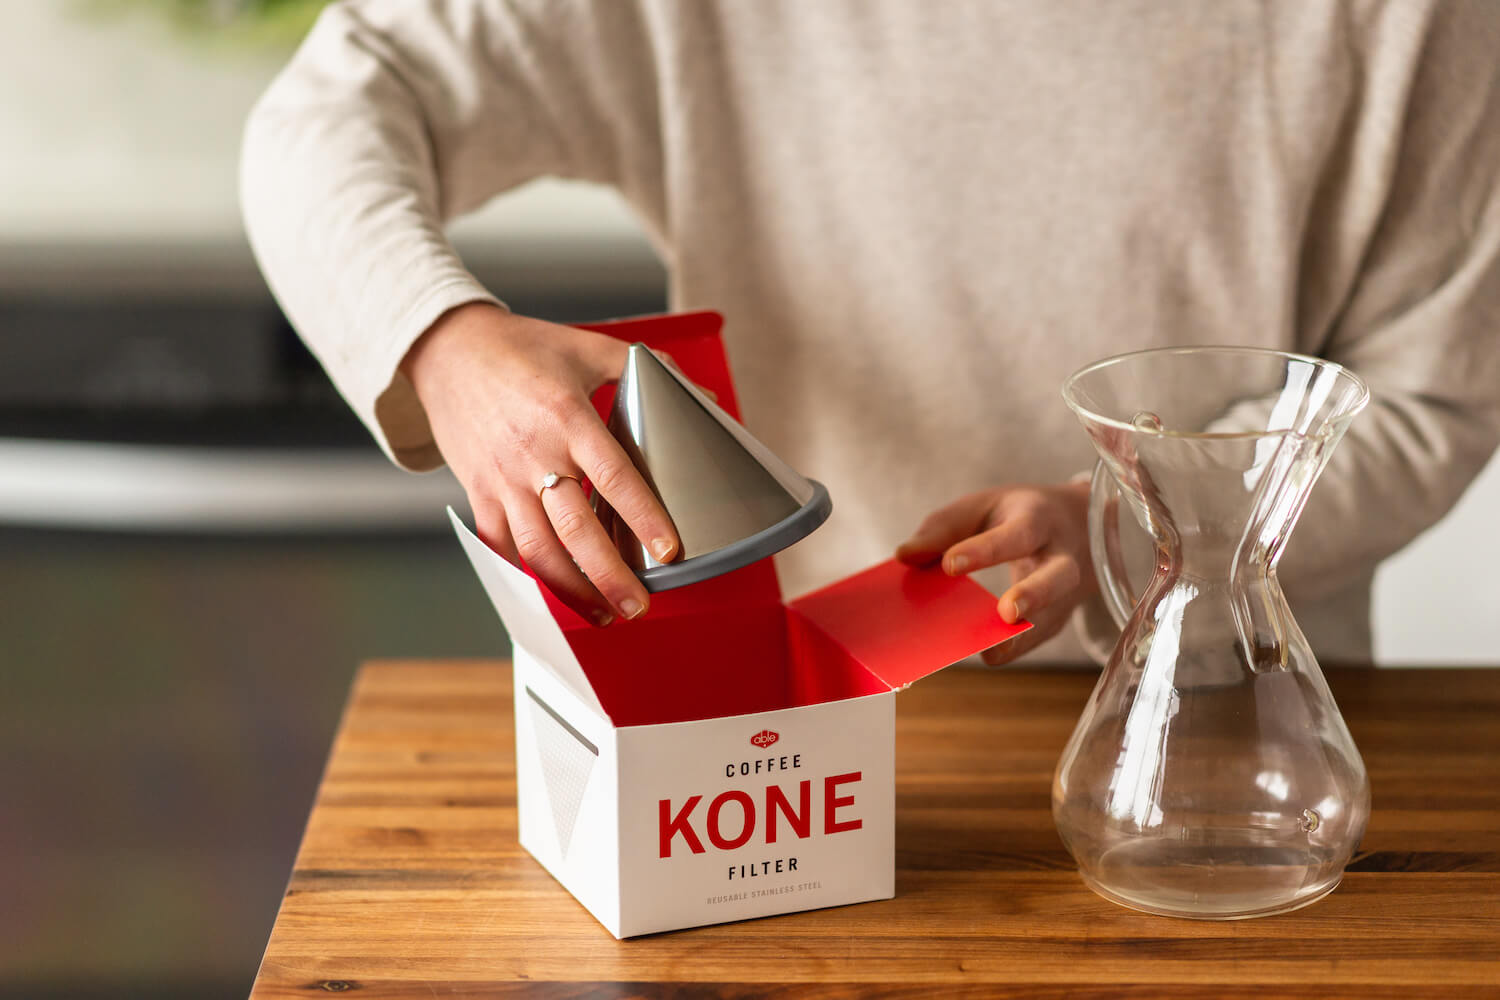 Ratio Kone Coffee Filter by Able key feature 2